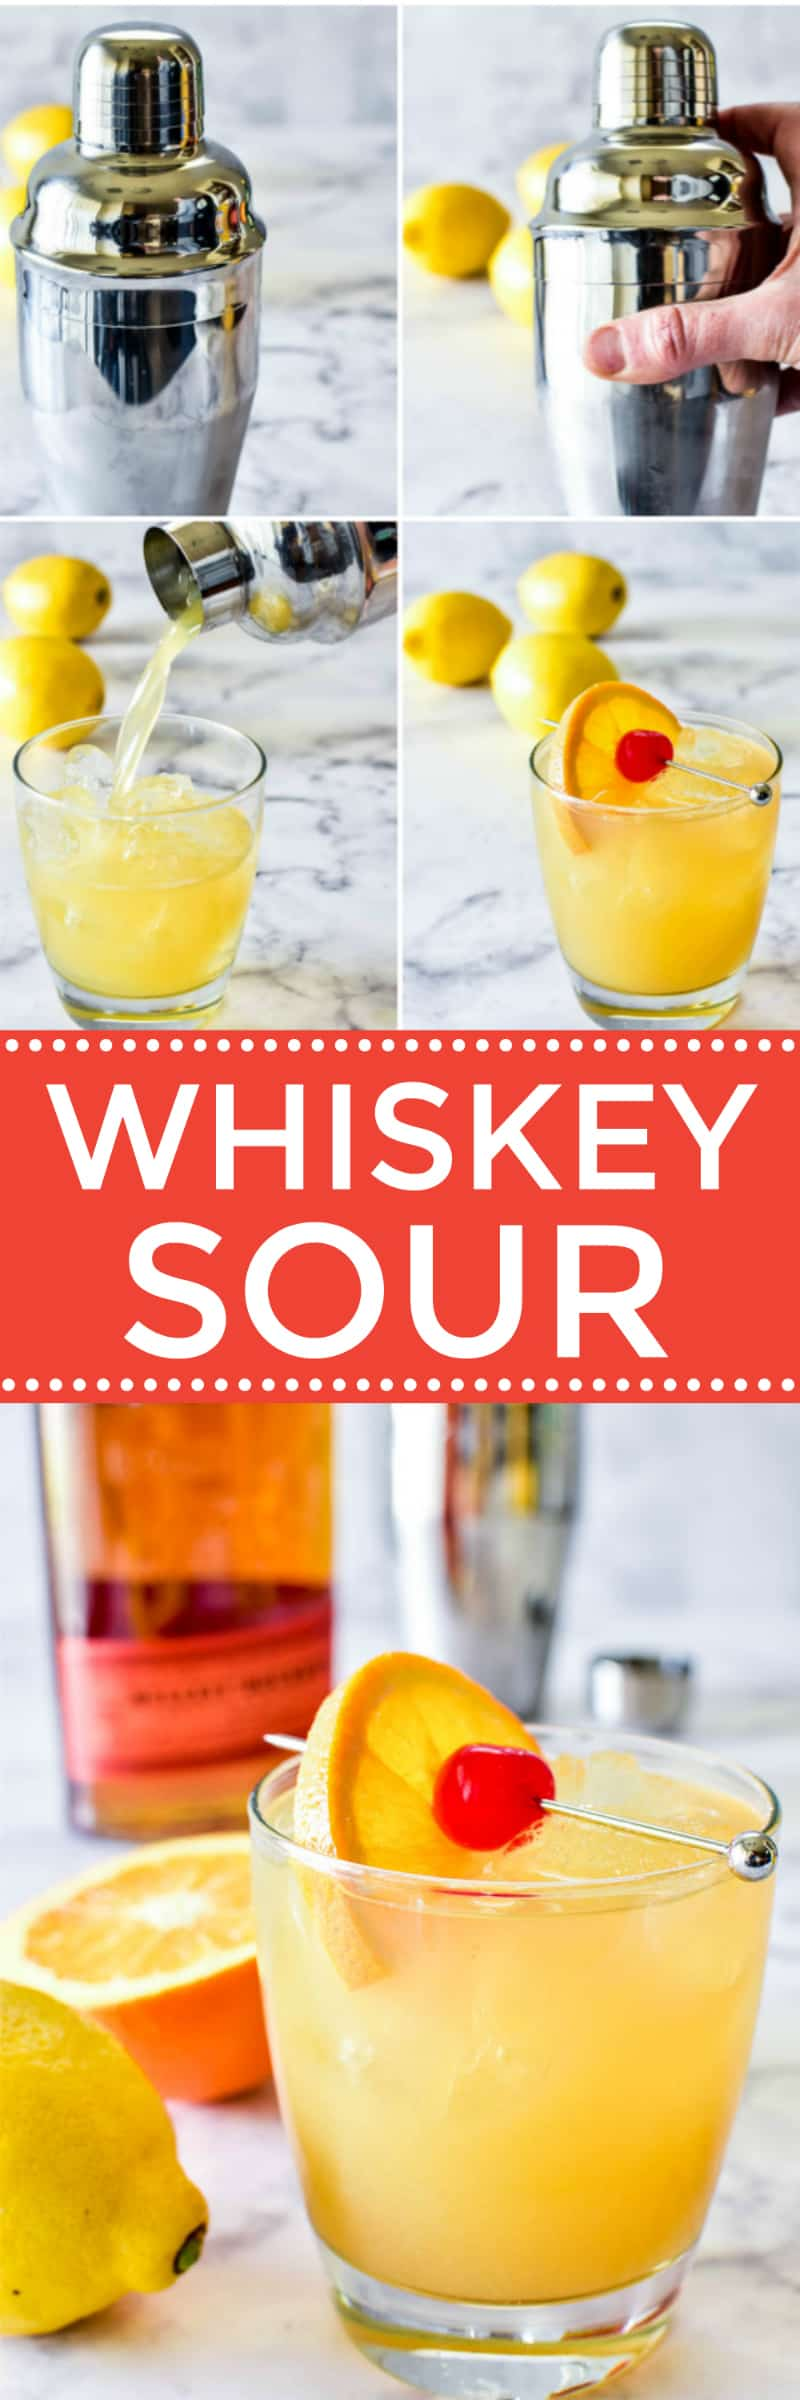 Collage image of Whiskey Sour steps and finished drink